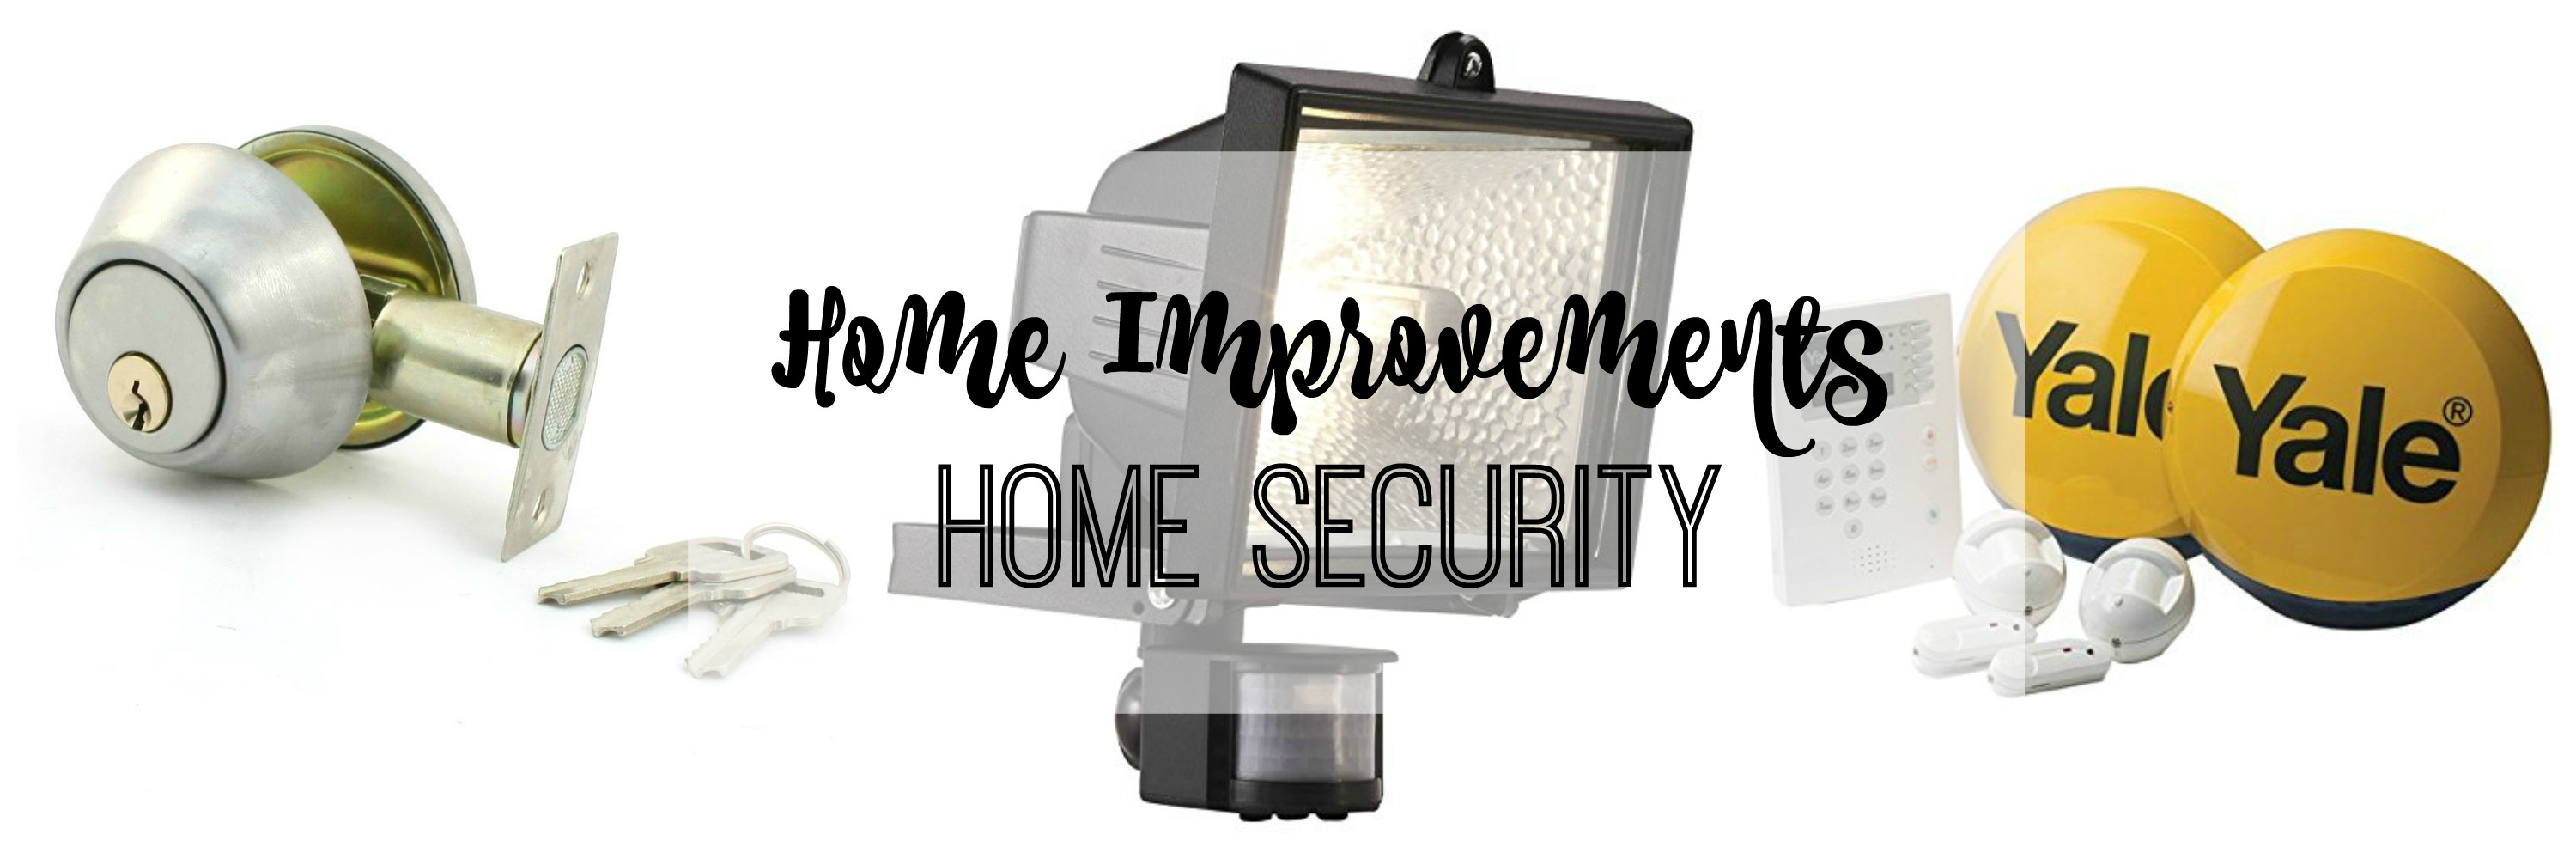 home security title